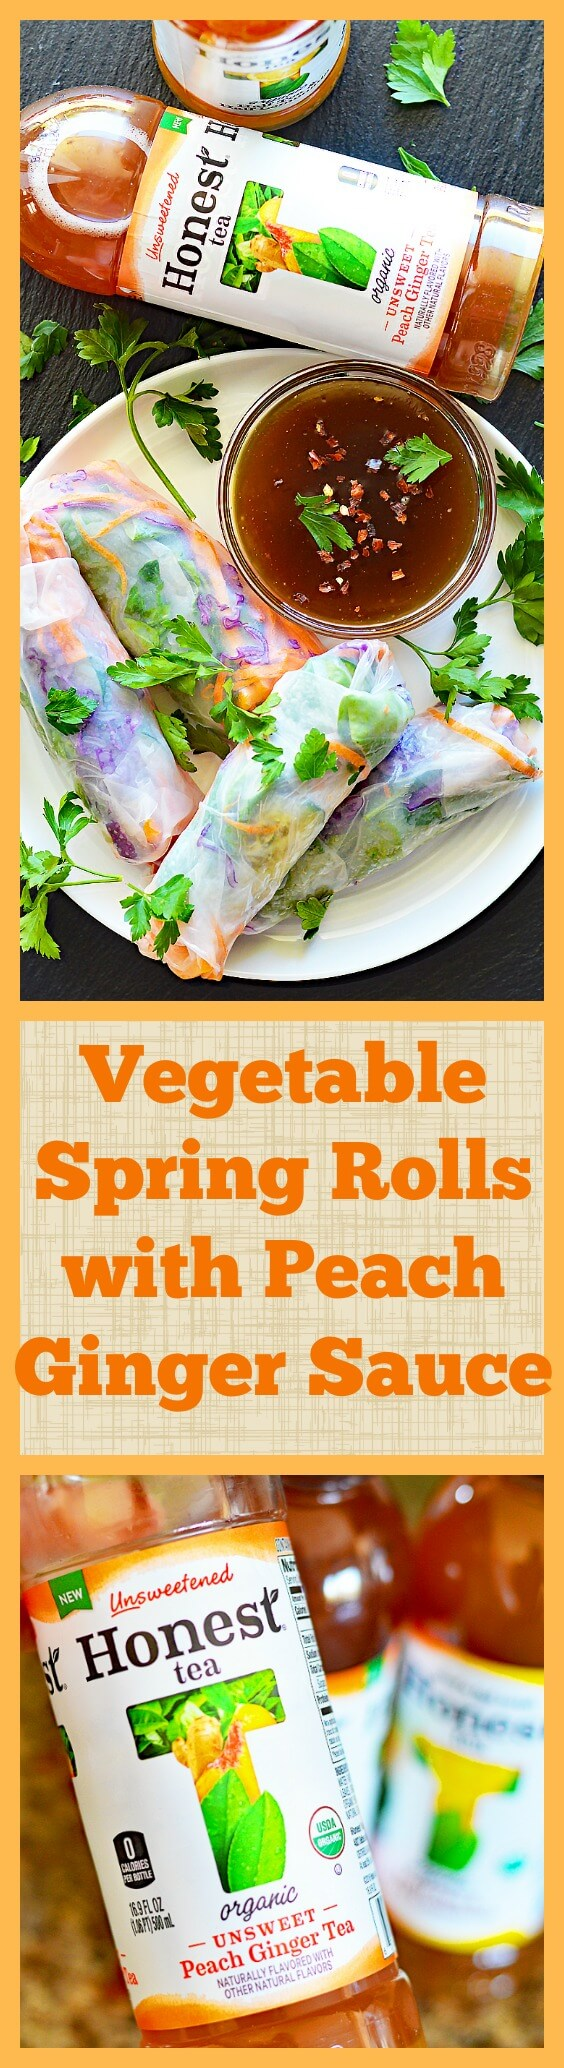 ... spring rolls with peach ginger dipping sauce vegetable spring rolls